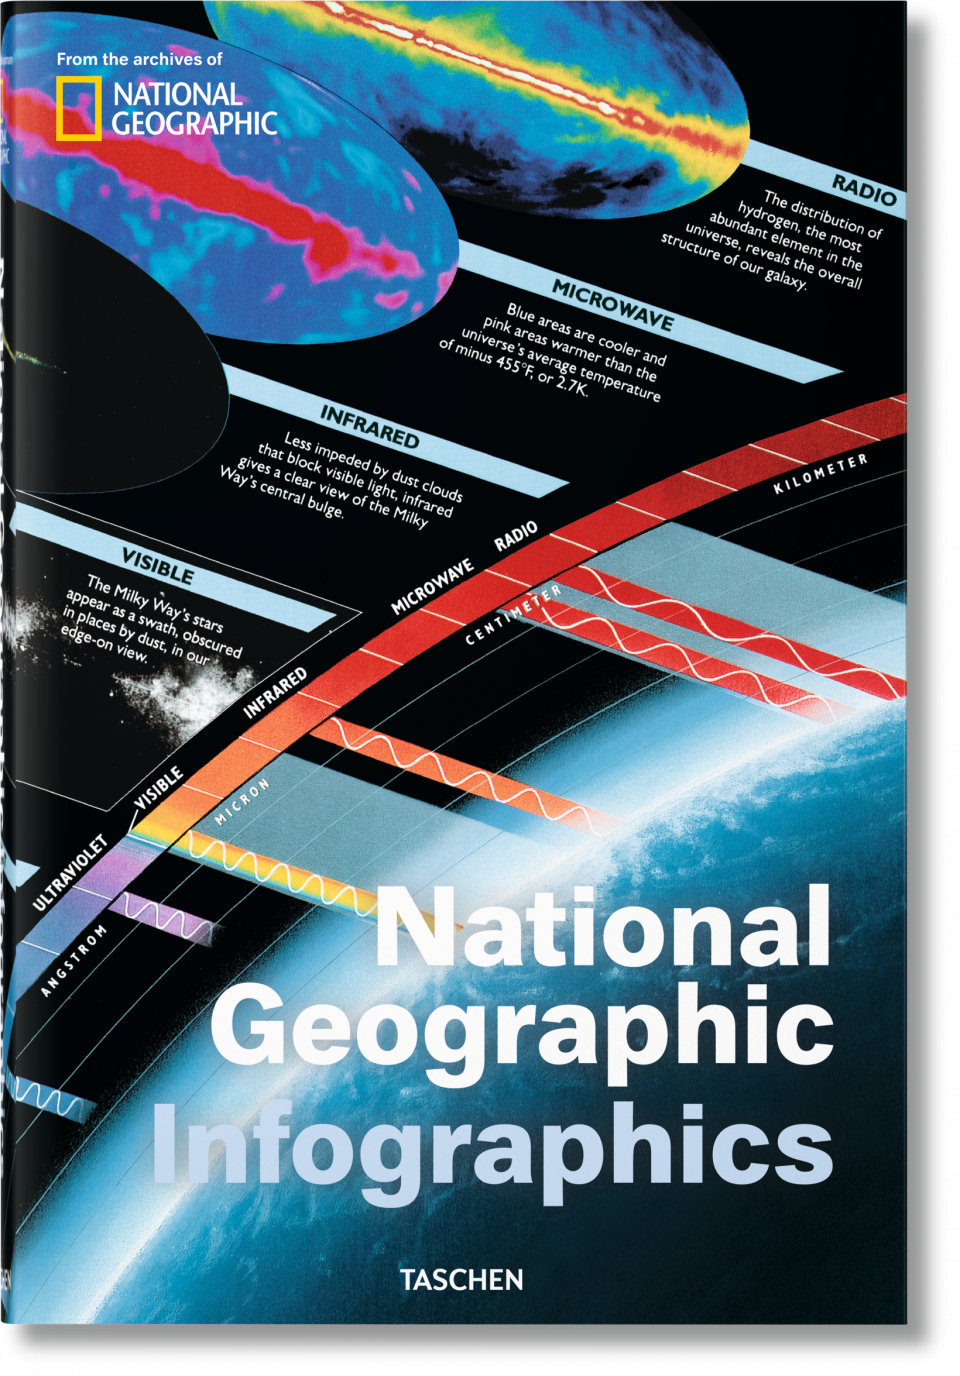 Discover National Geographic Infographics. TASCHEN Books